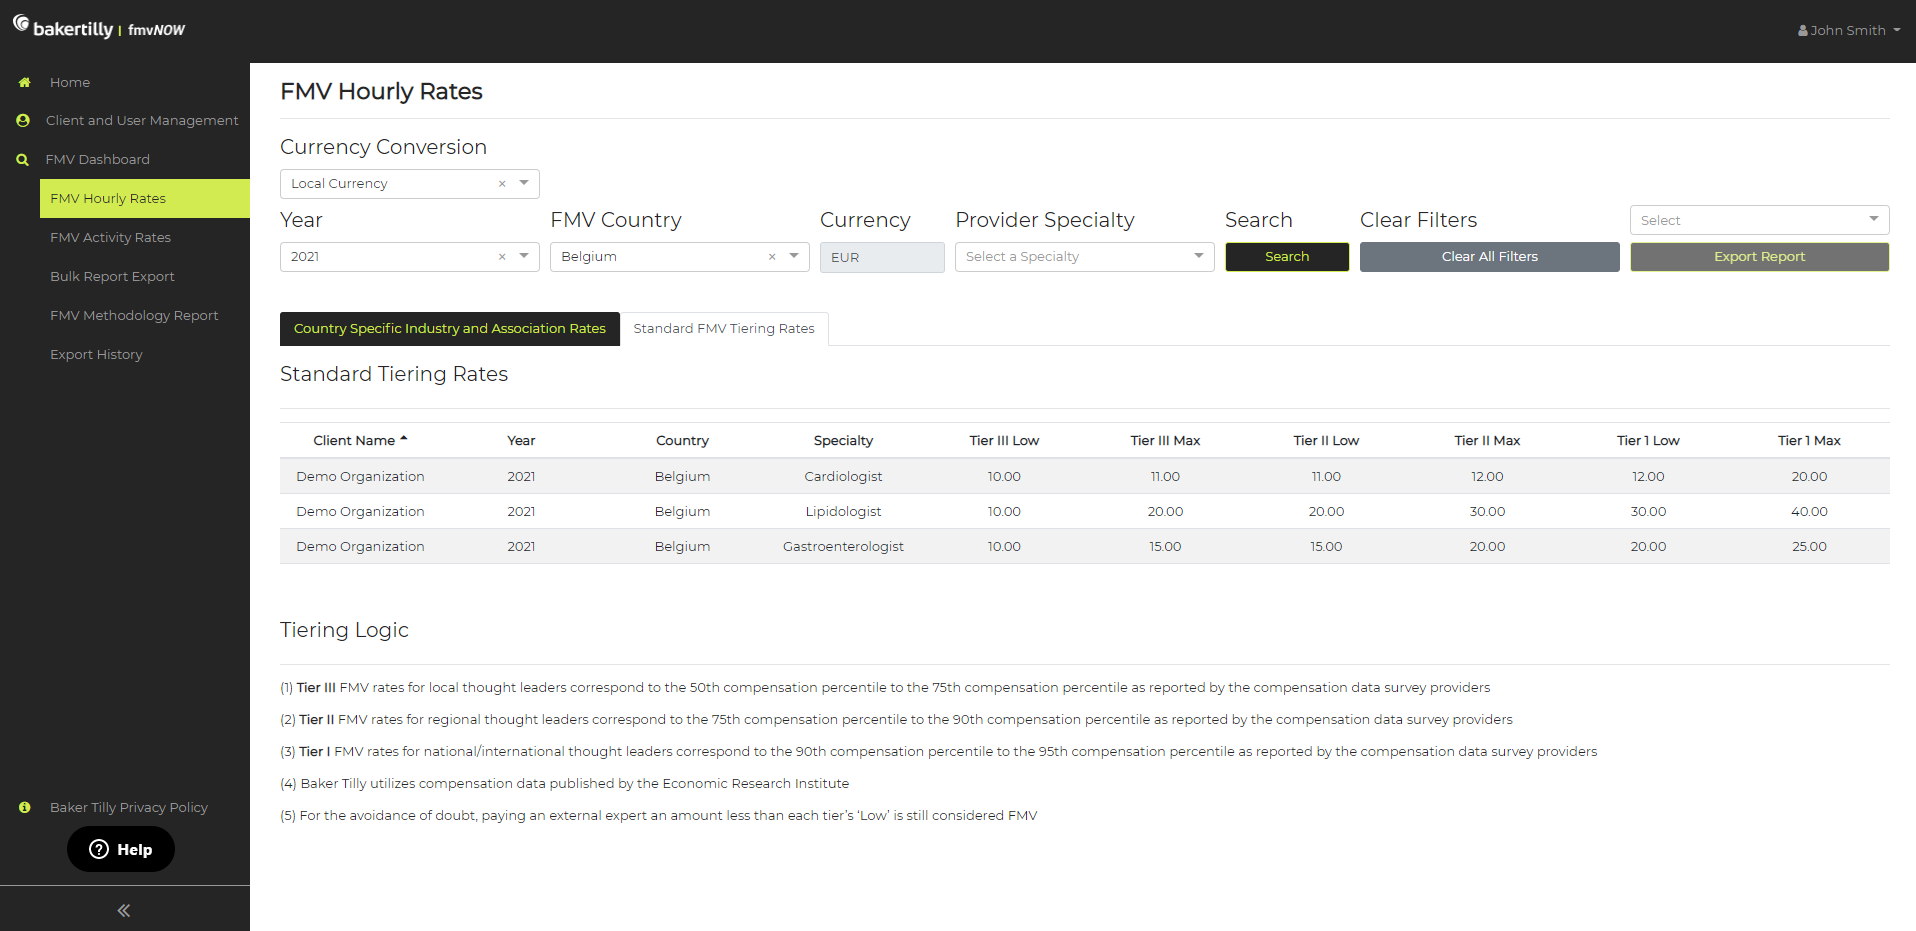 Hourly Rates for Fair Market Value (FMV) tool